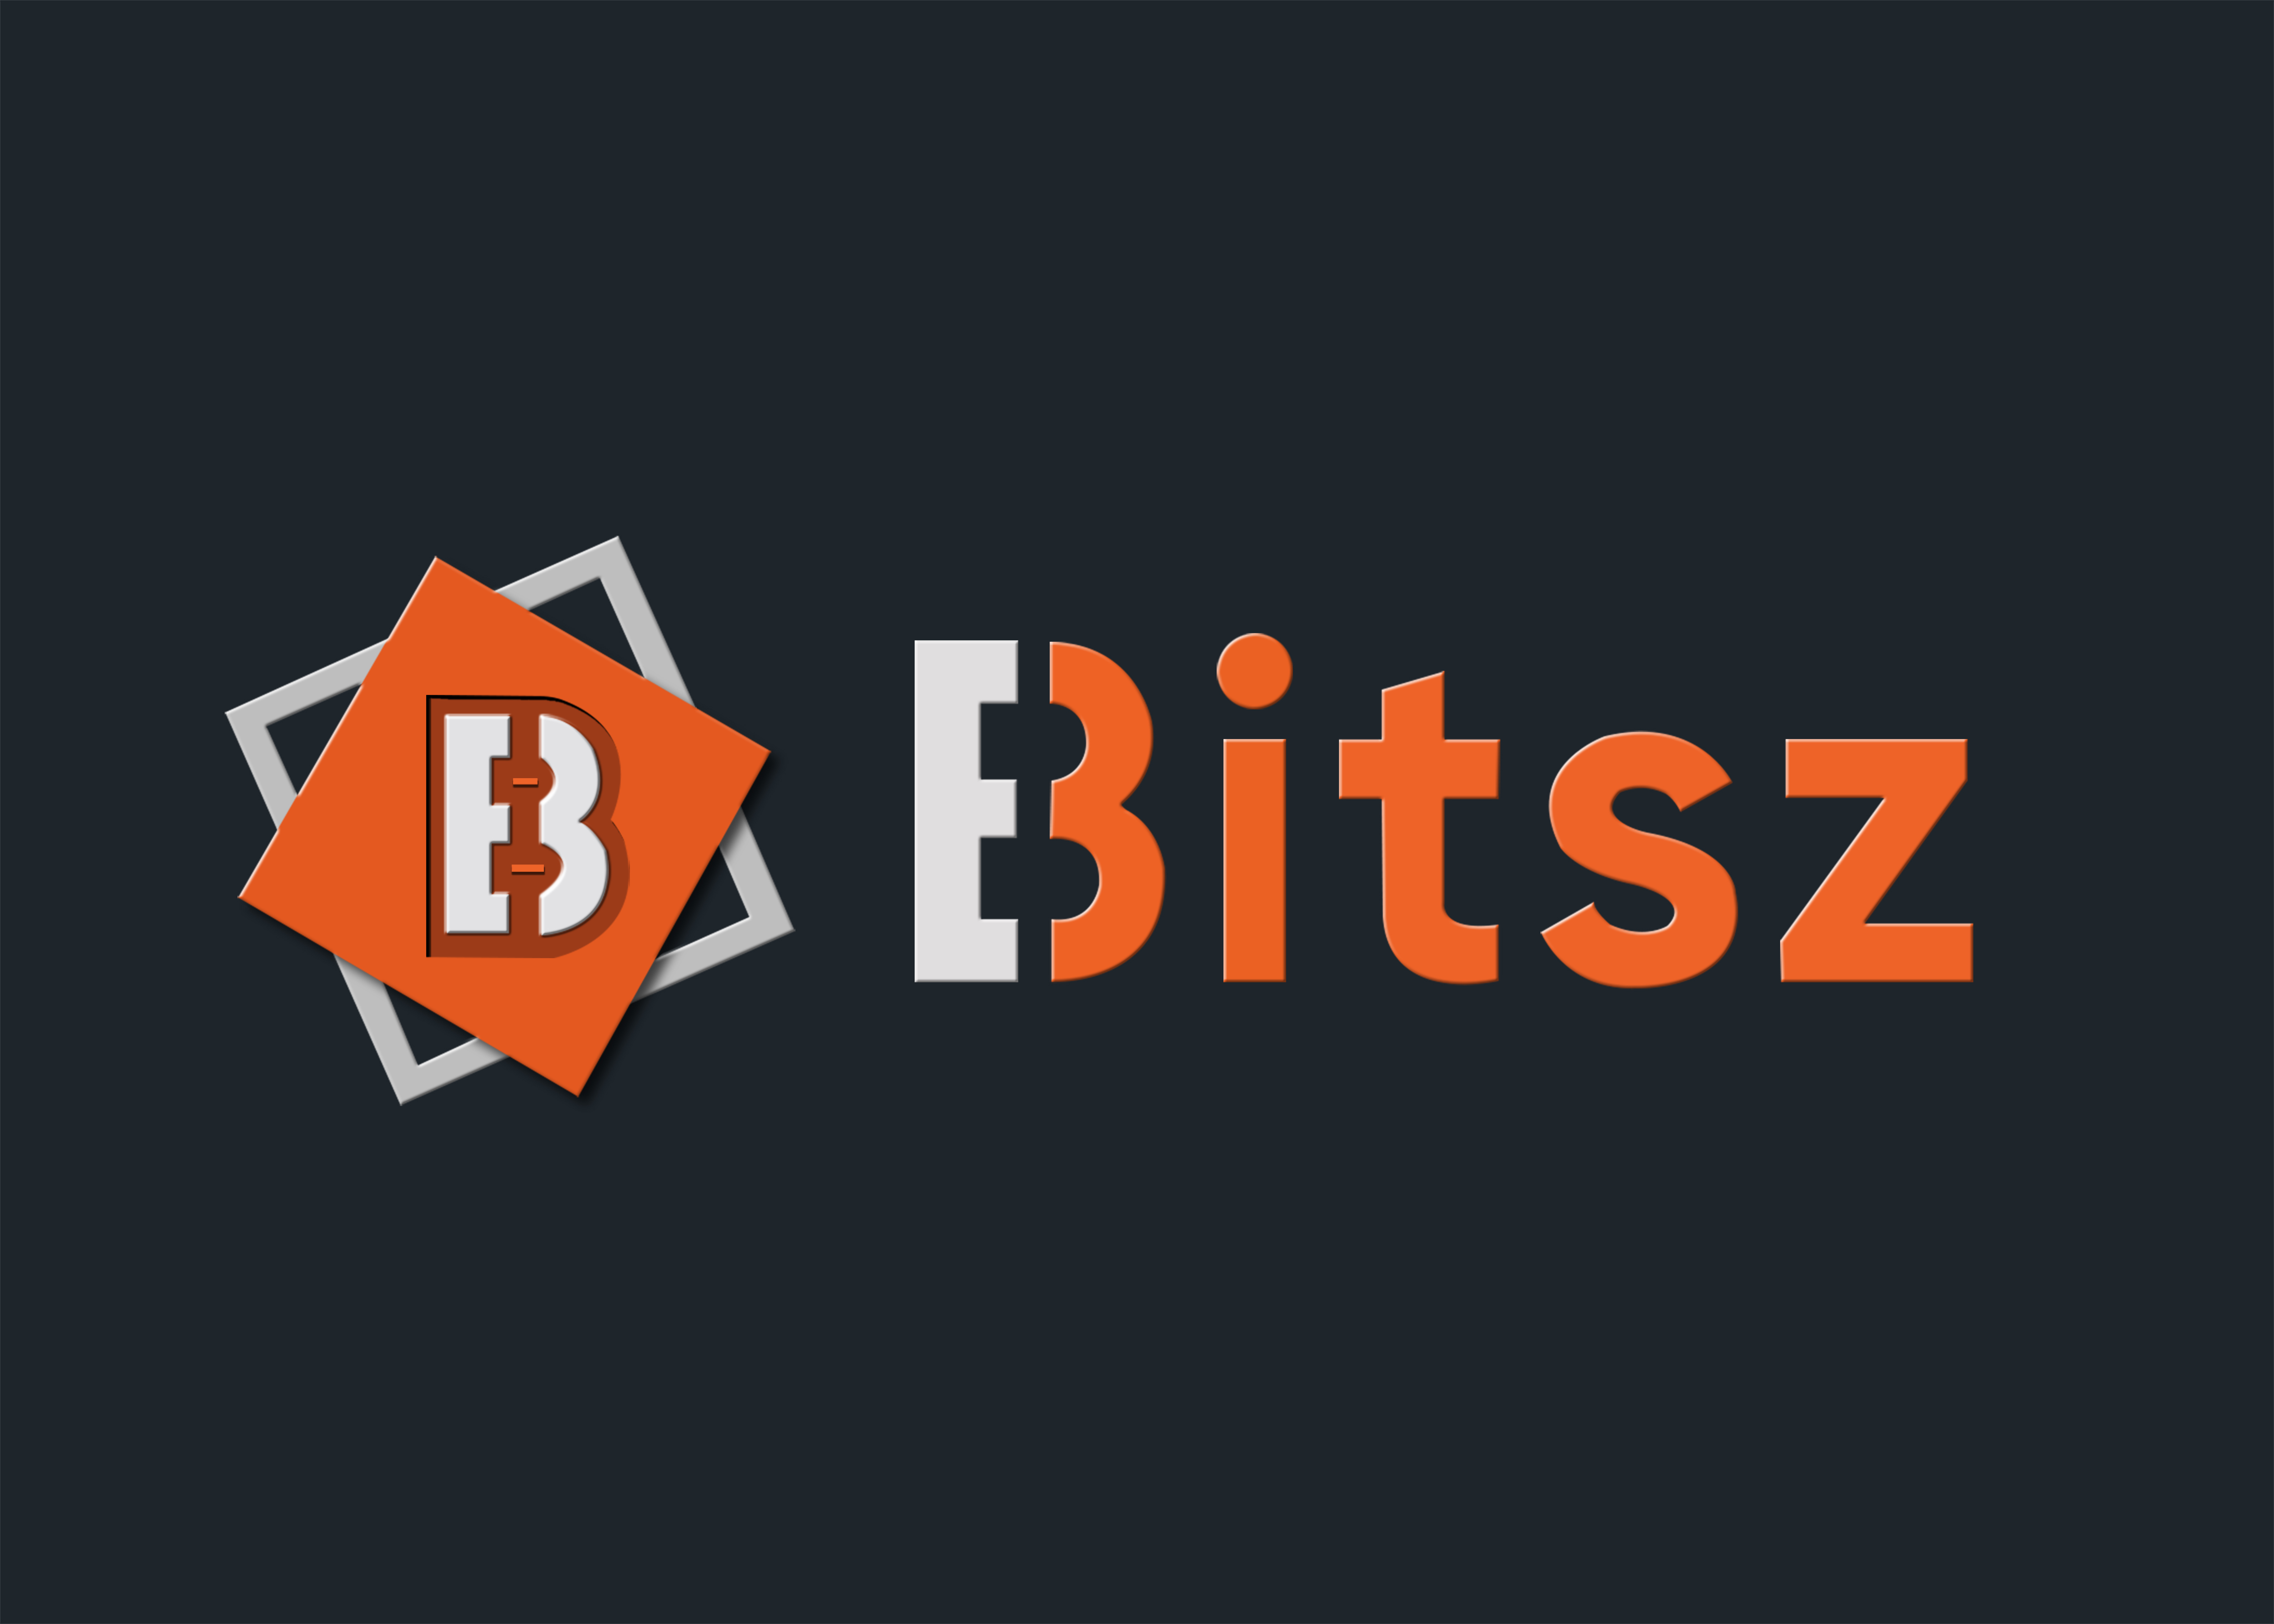 Common man needs to understand and get knowledgeable about crypto before investing: Bitsz Exchange Founder Naveen